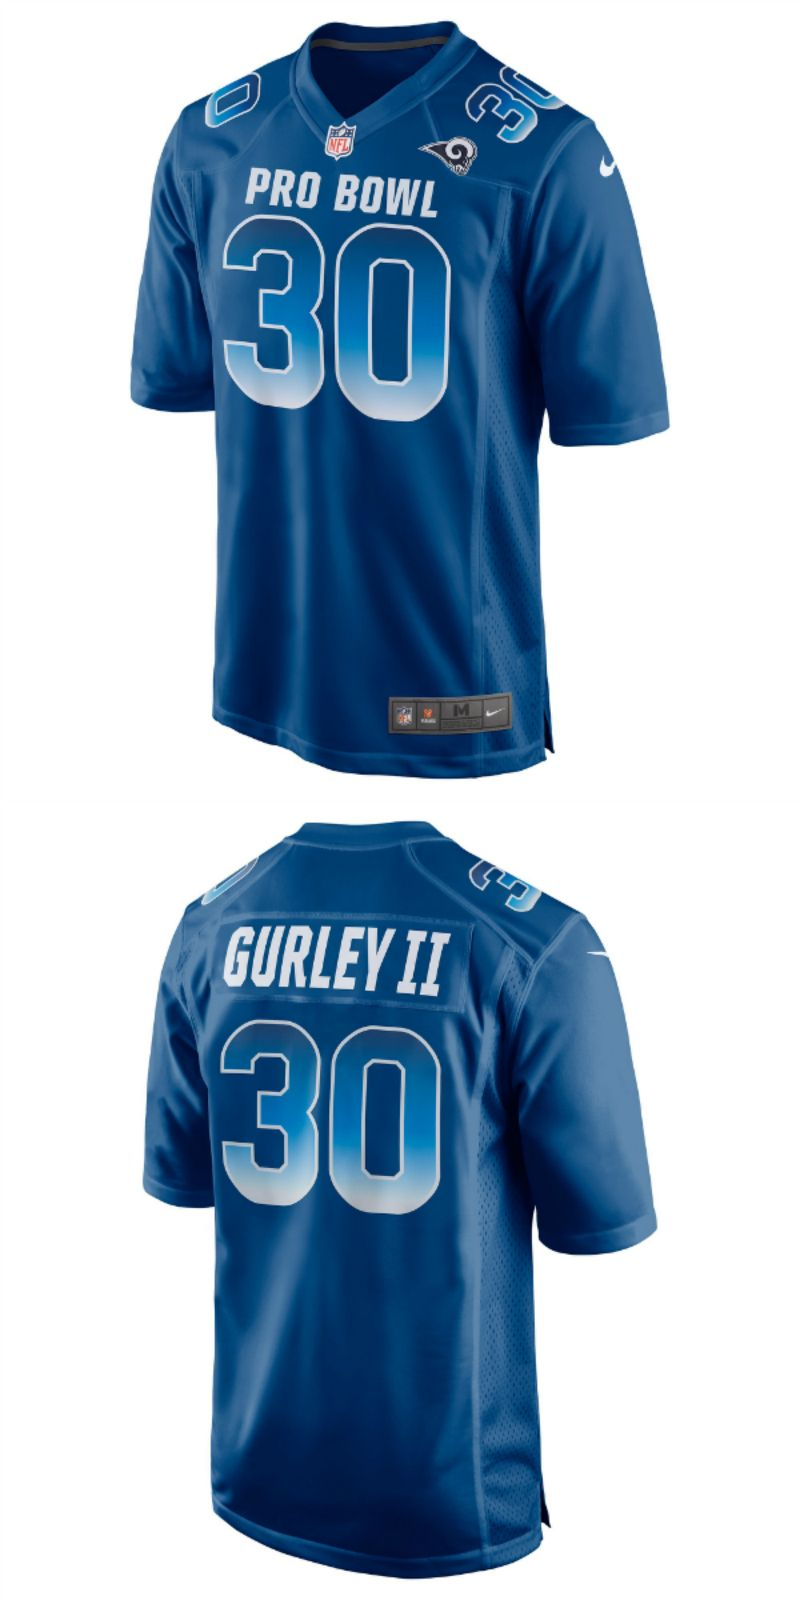 6bf7e069 UP TO 70% OFF. Todd Gurley II NFC Nike 2018 Pro Bowl Game Jersey ...